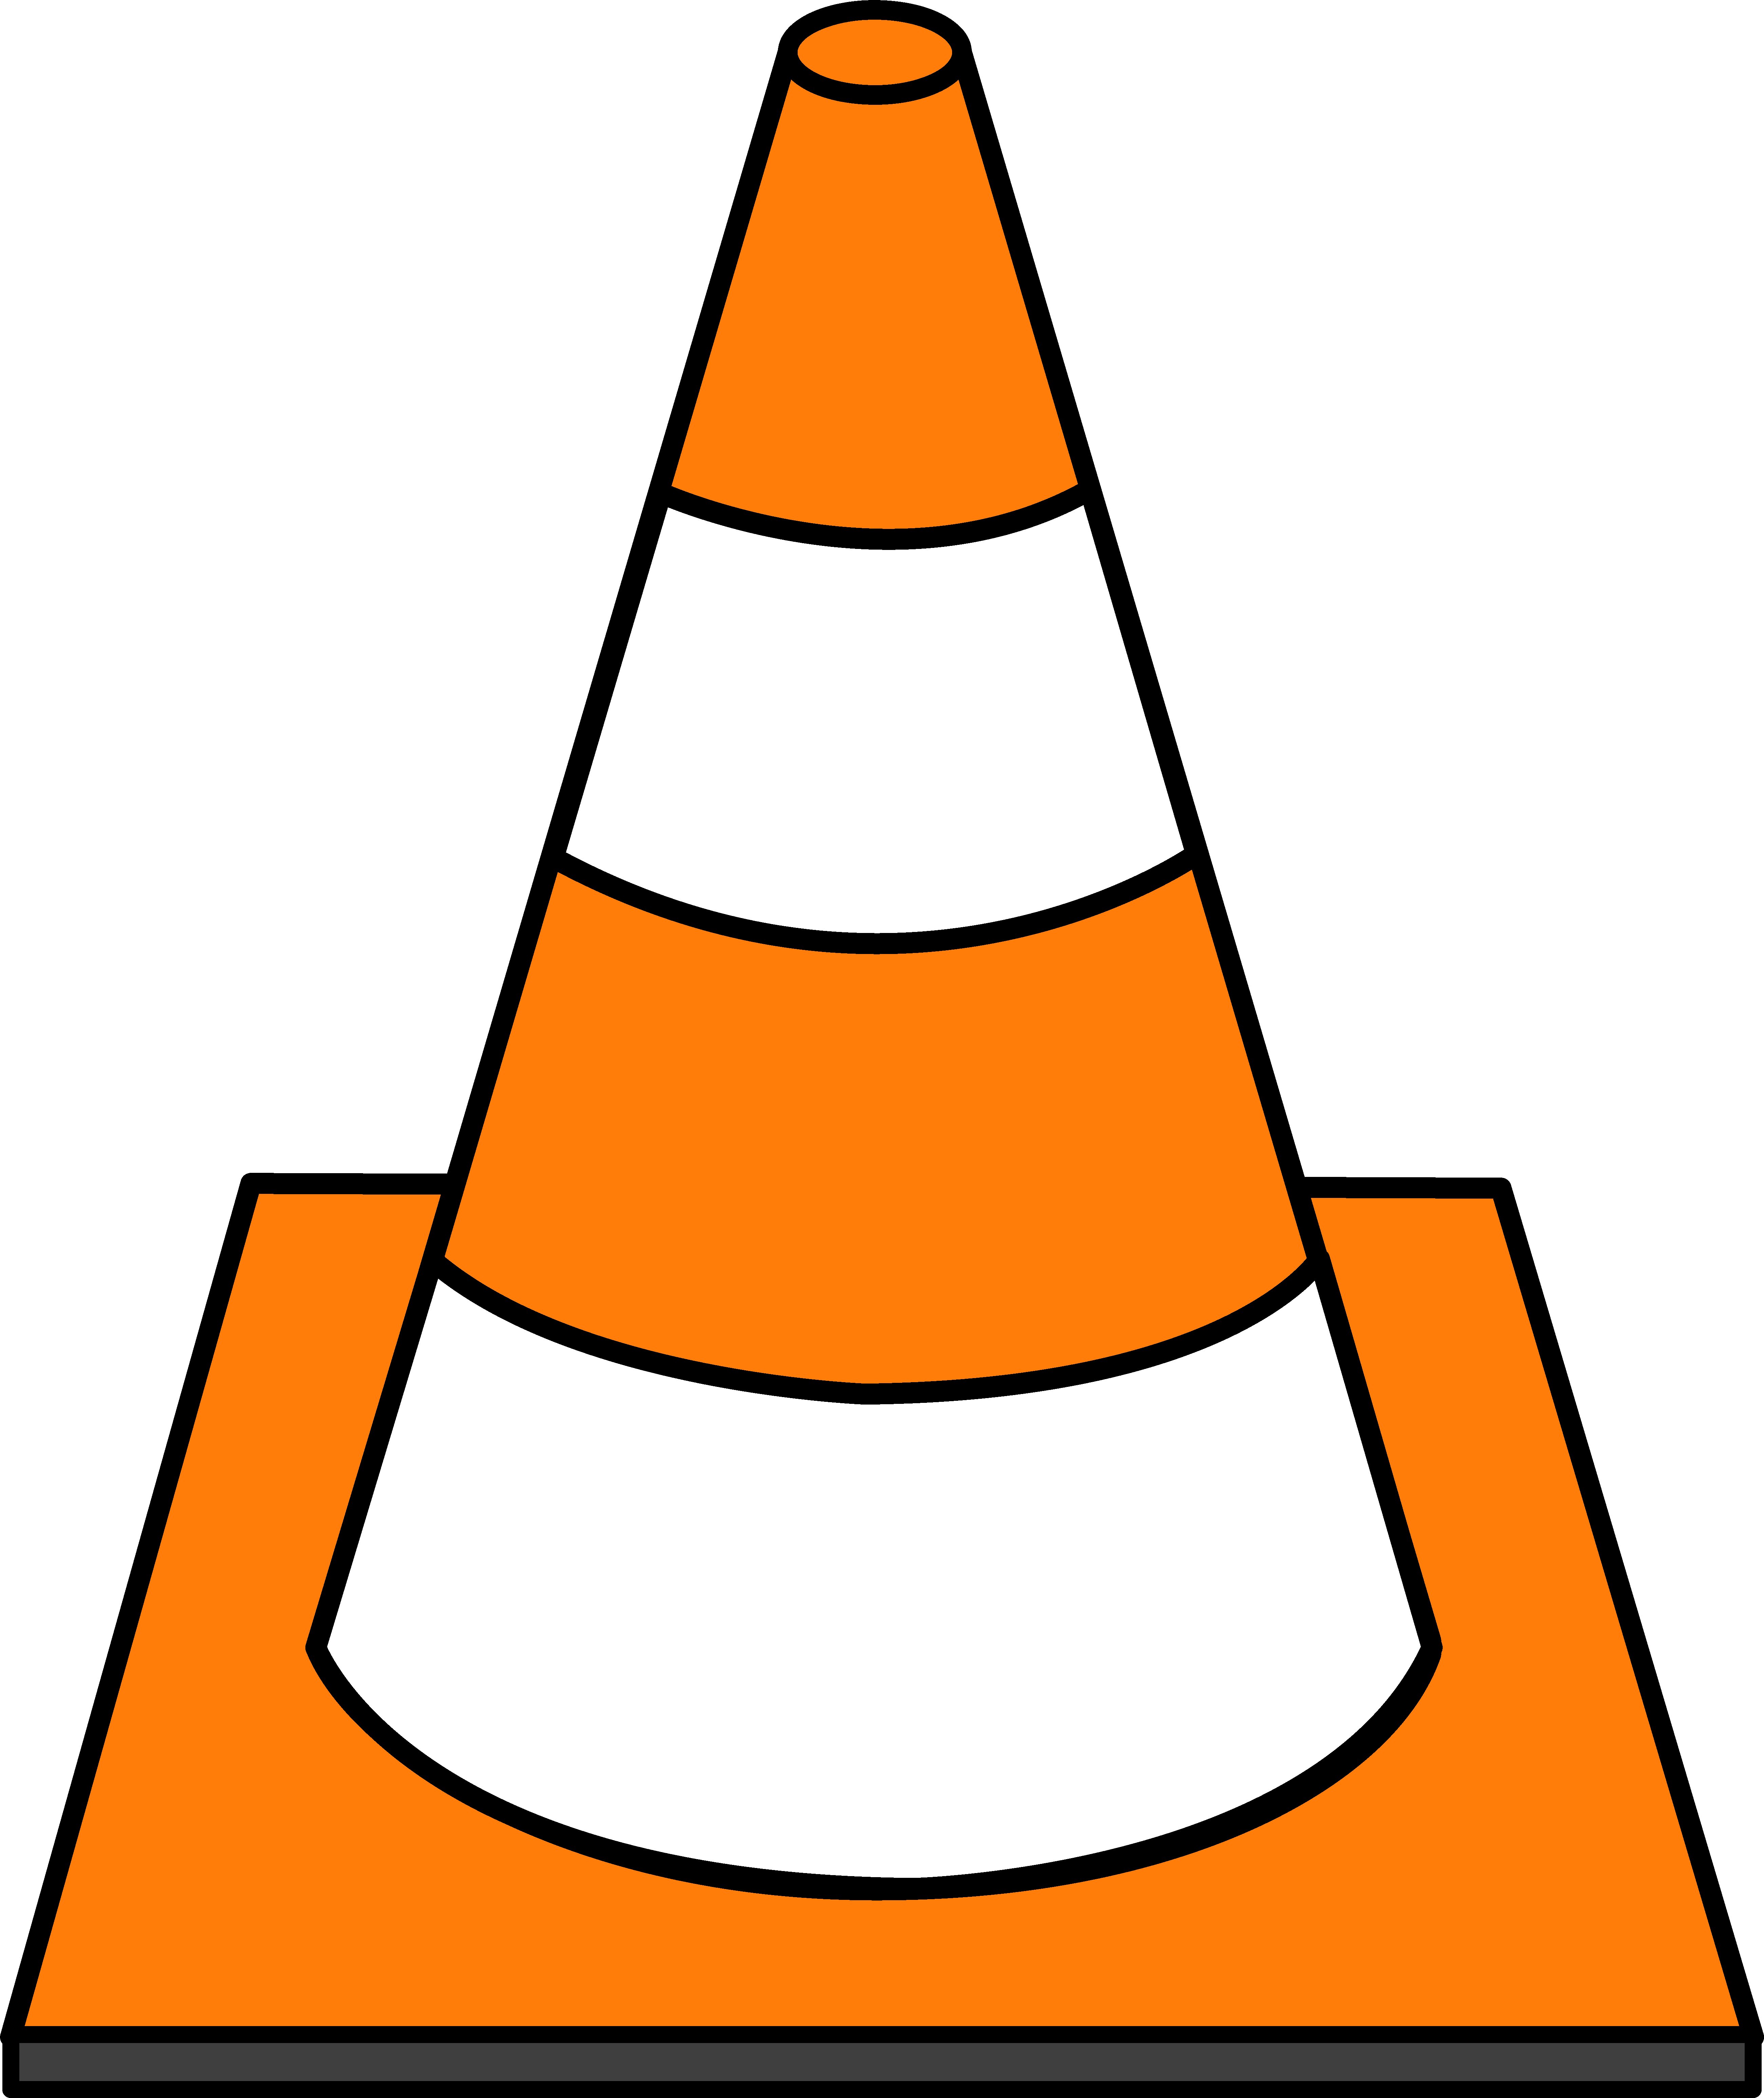 Highway car clipart clip freeuse download Striped Road Cone | Under construction | Pinterest | Construction ... clip freeuse download